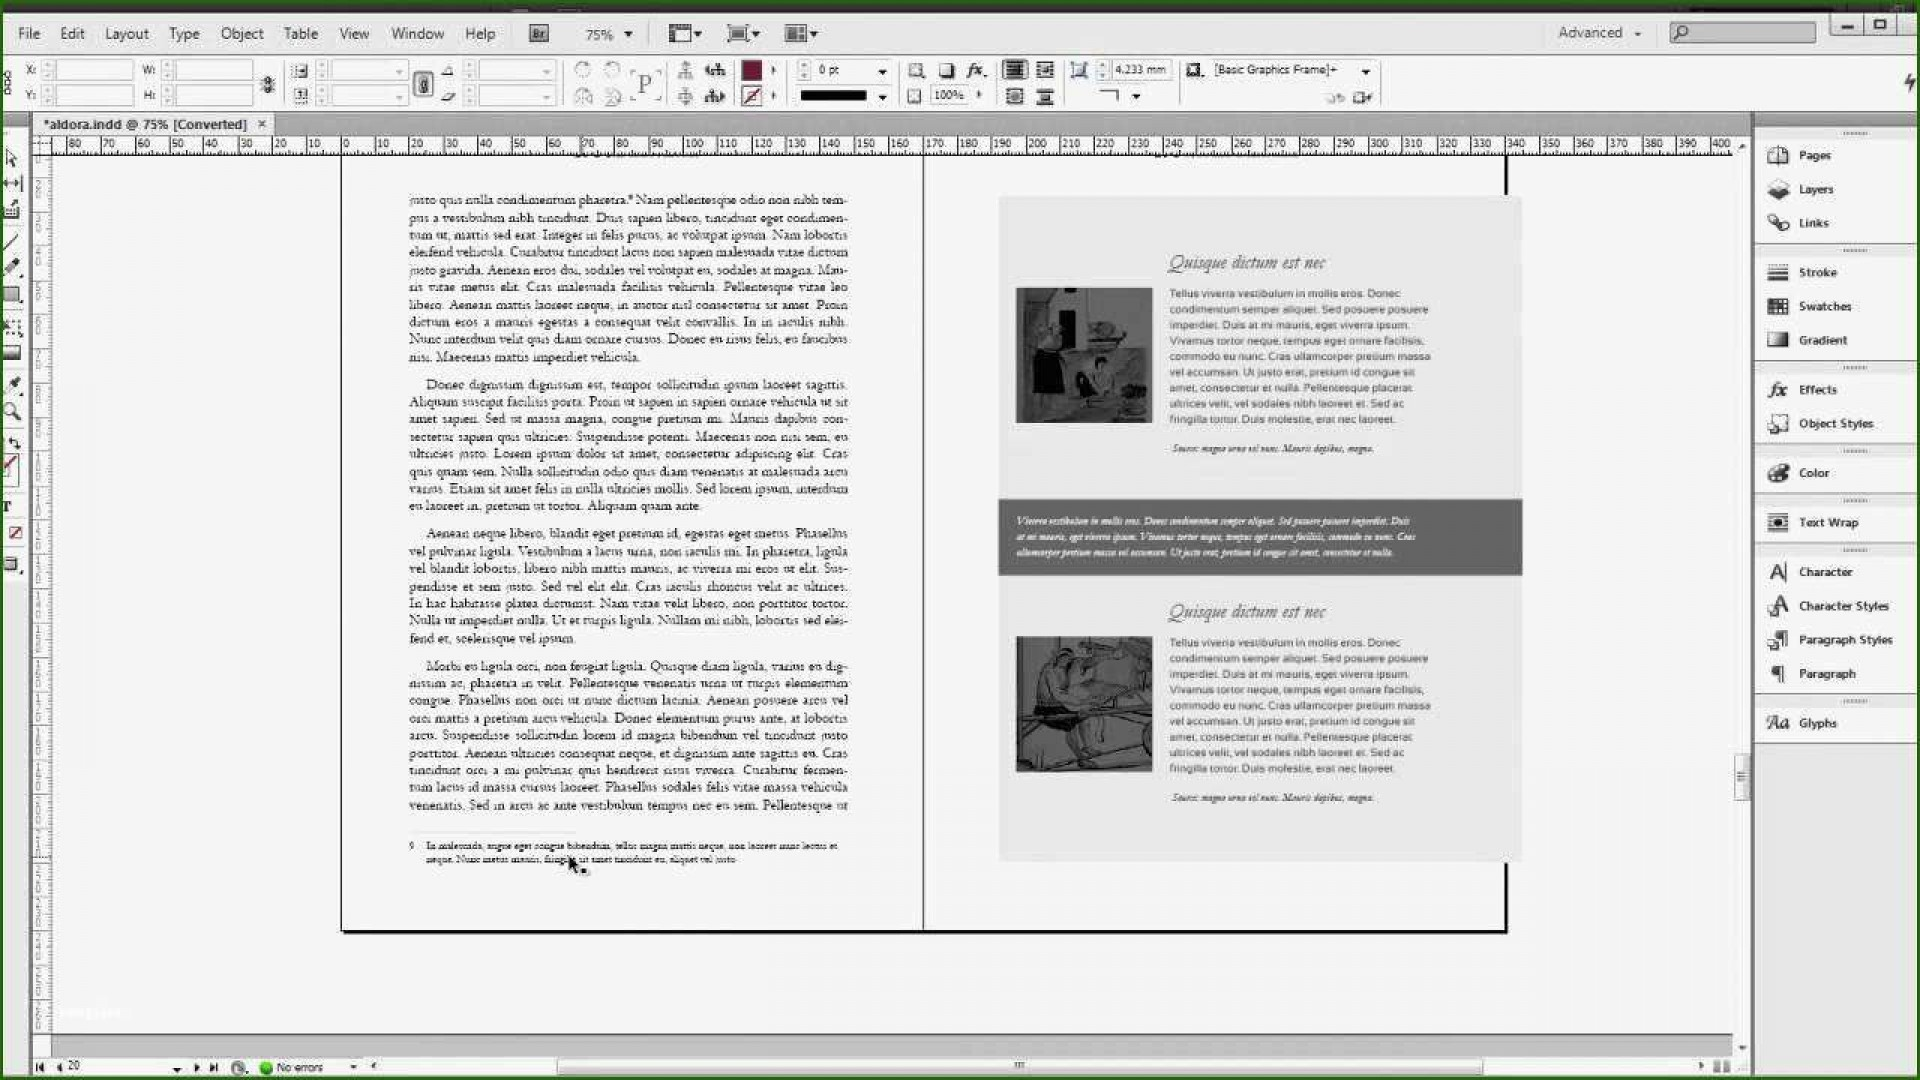 000 Surprising Indesign Book Layout Template Inspiration  Free Download1920